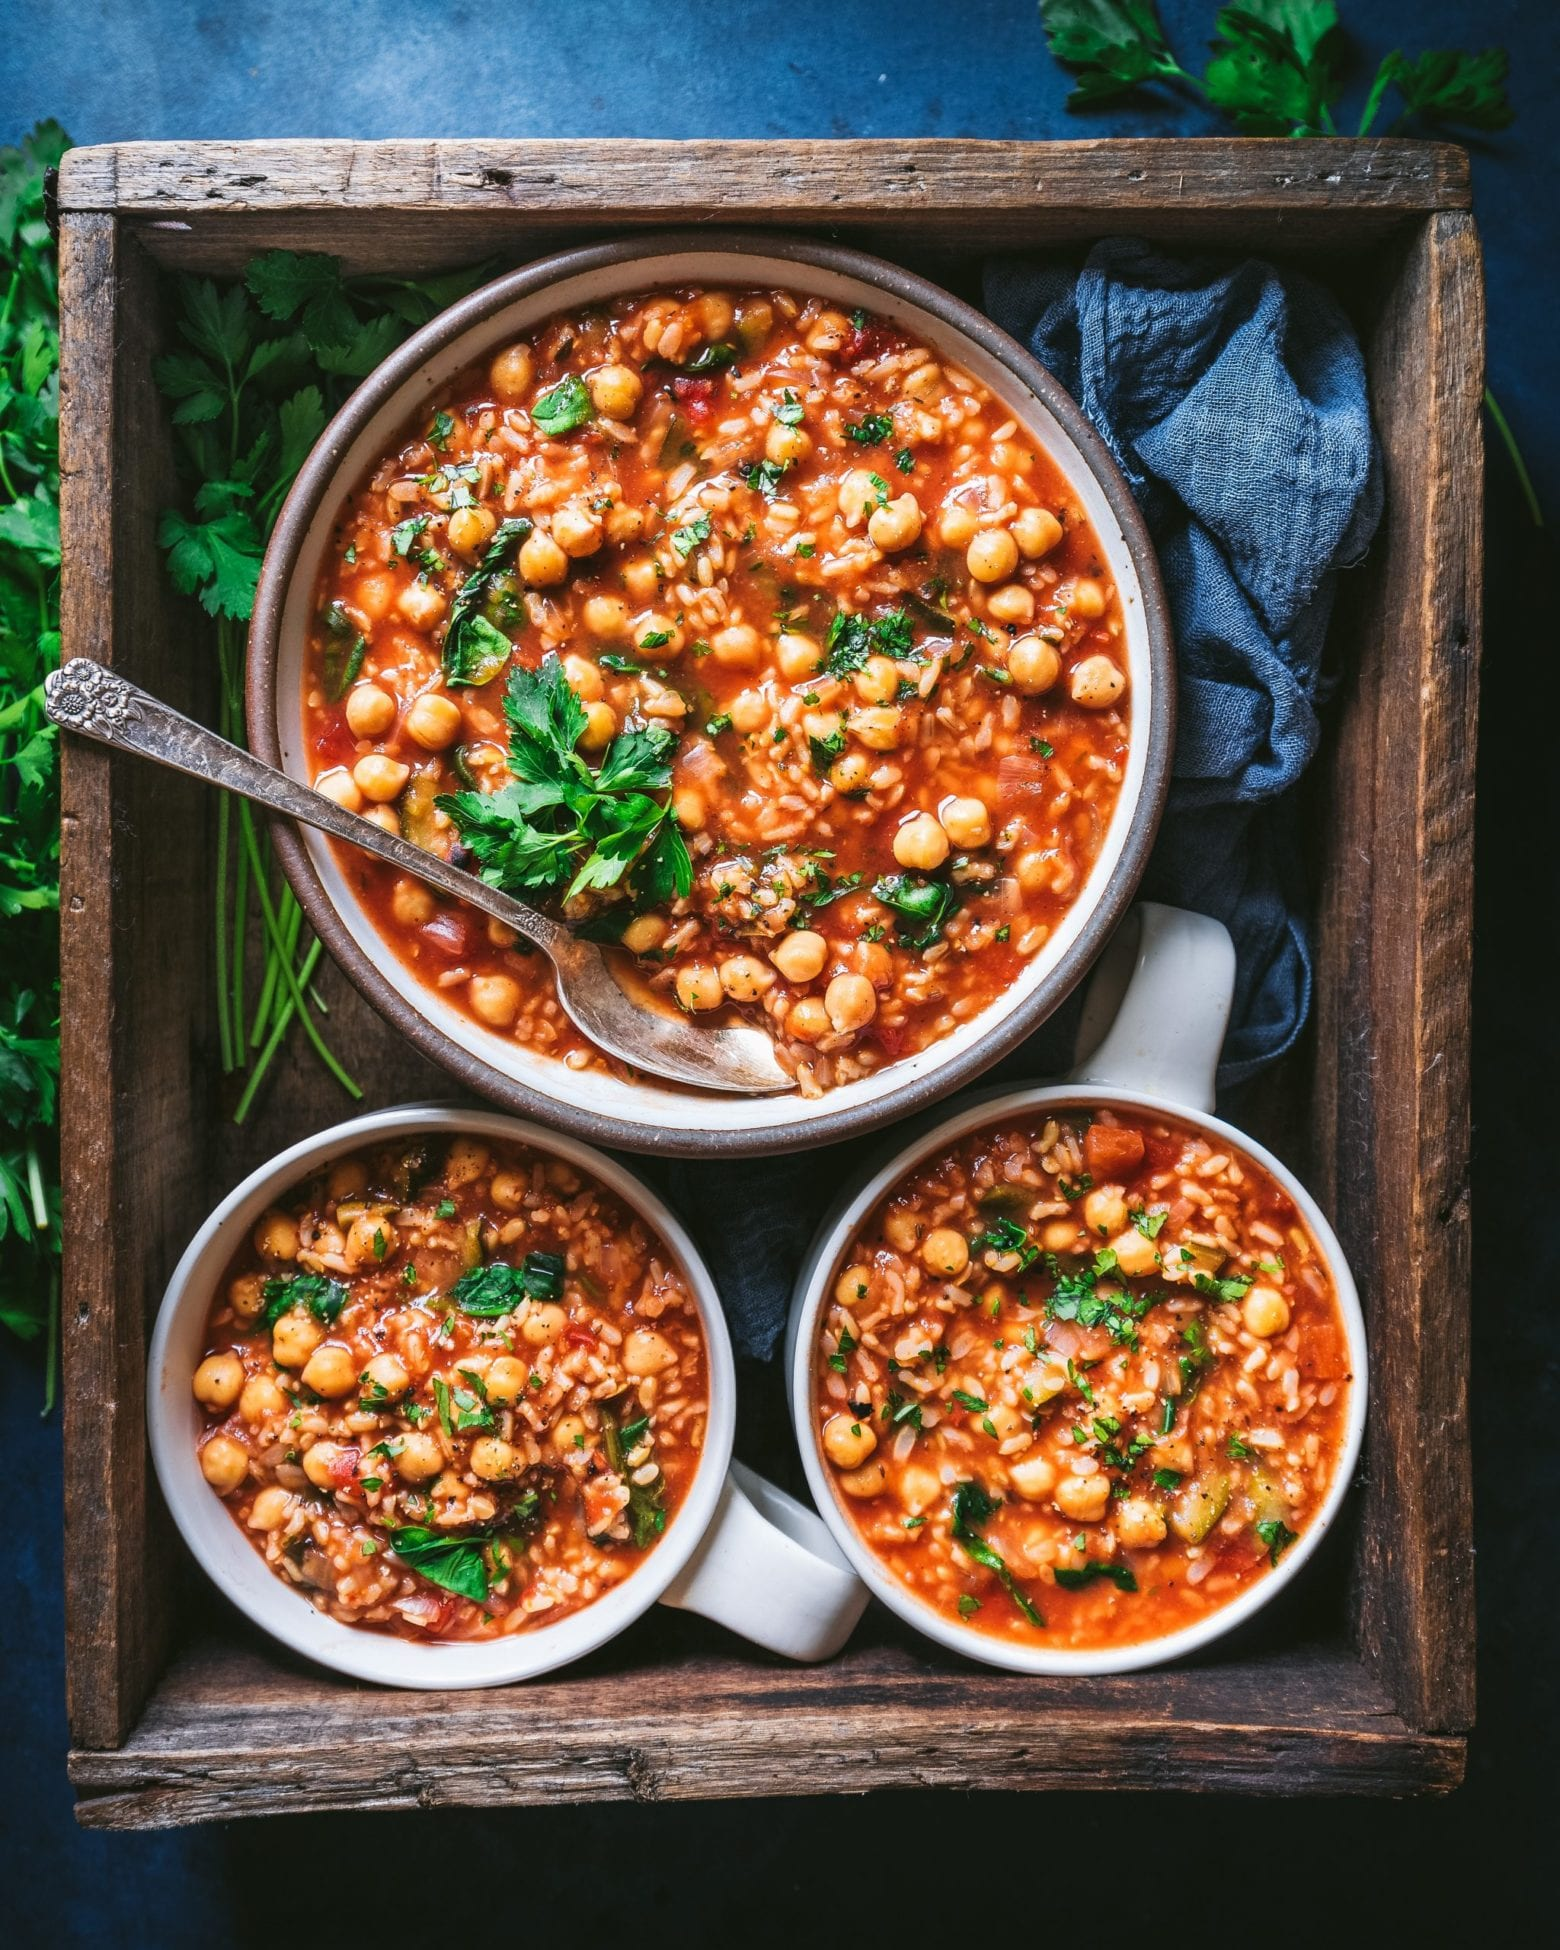 chickpea tomato brown rice stew in one large pot and two smaller soup bowls